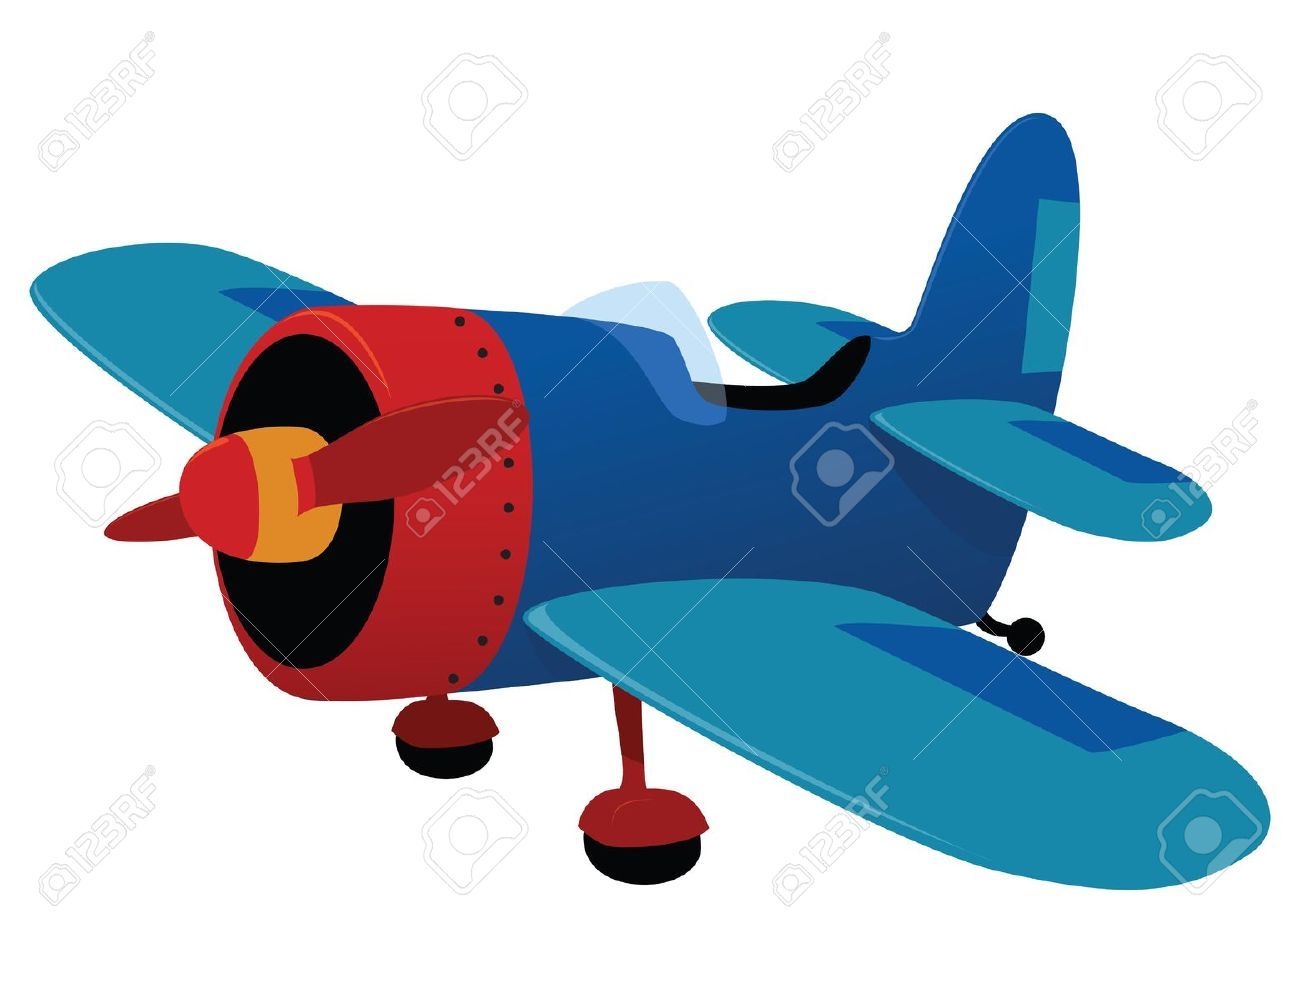 Retro Plane Toy. Vector Illustration Royalty Free Cliparts.